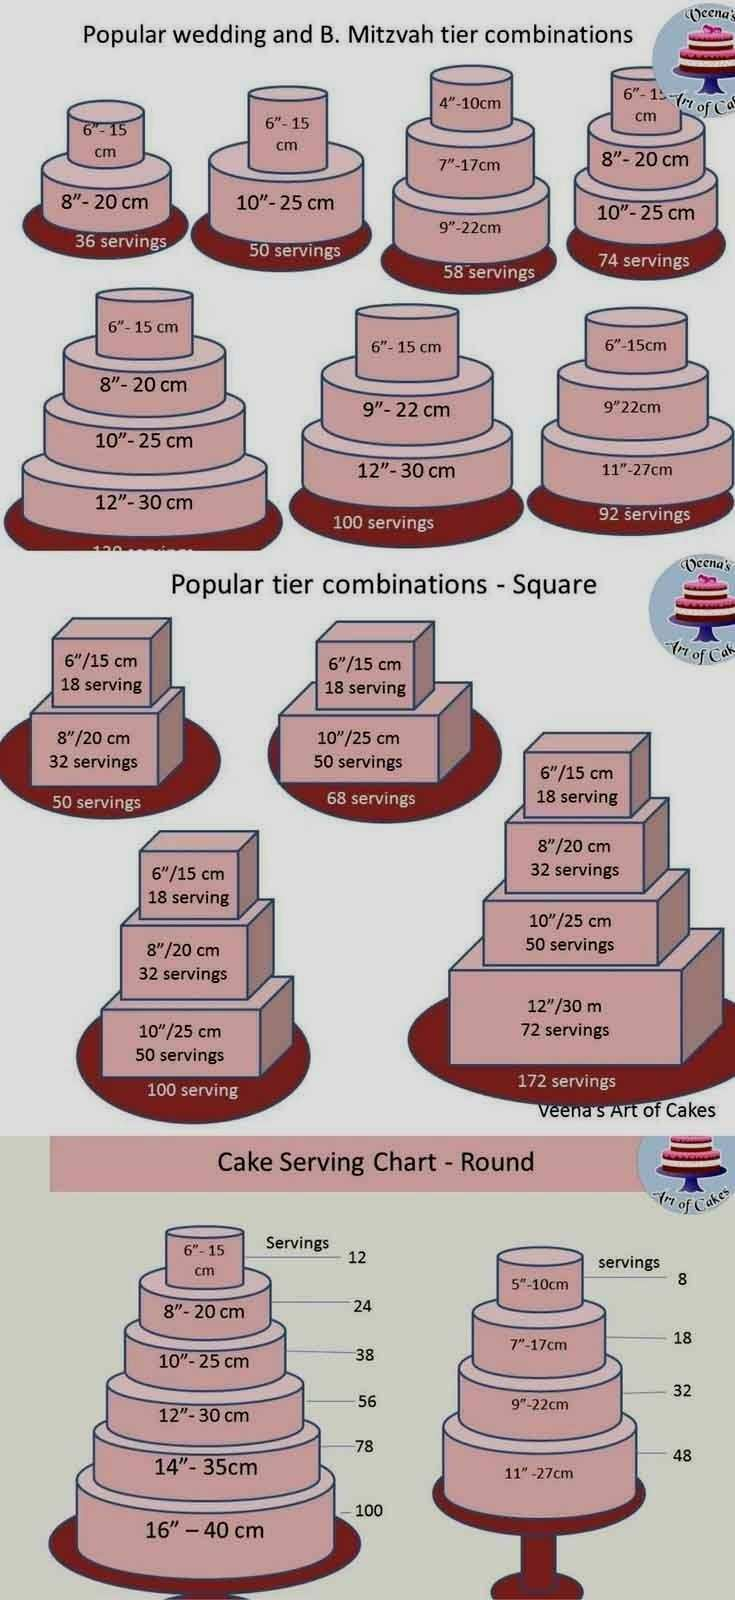 As The Cake Decorator We All Need Standard Cake Offering Graph Guides And Popular Tier Combo Manuals In 2020 Cake Serving Chart Cake Servings Basic Cake